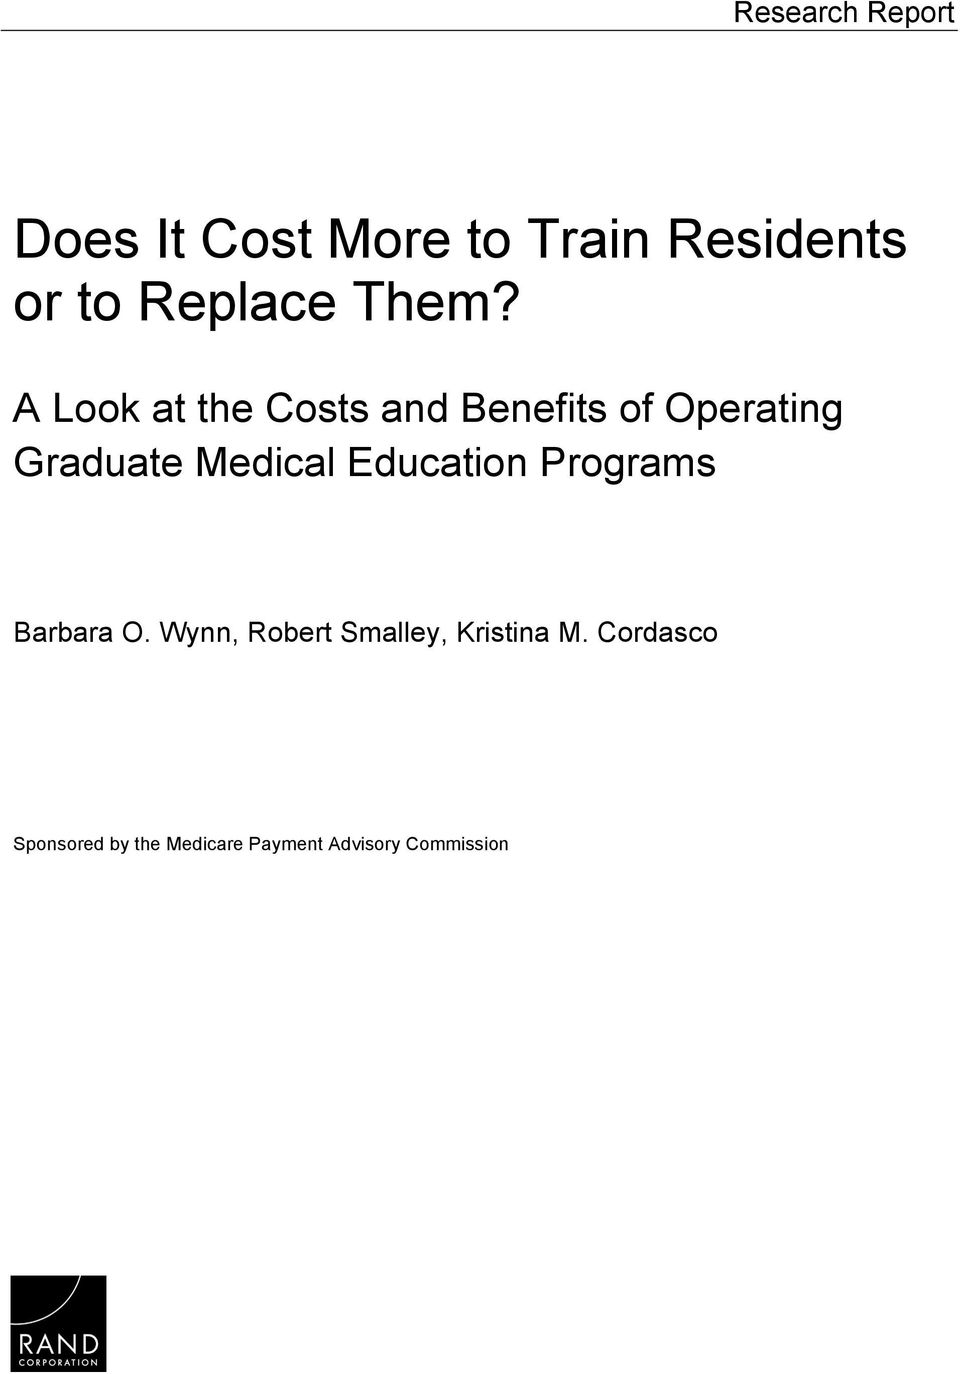 A Look at the Costs and Benefits of Operating Graduate Medical